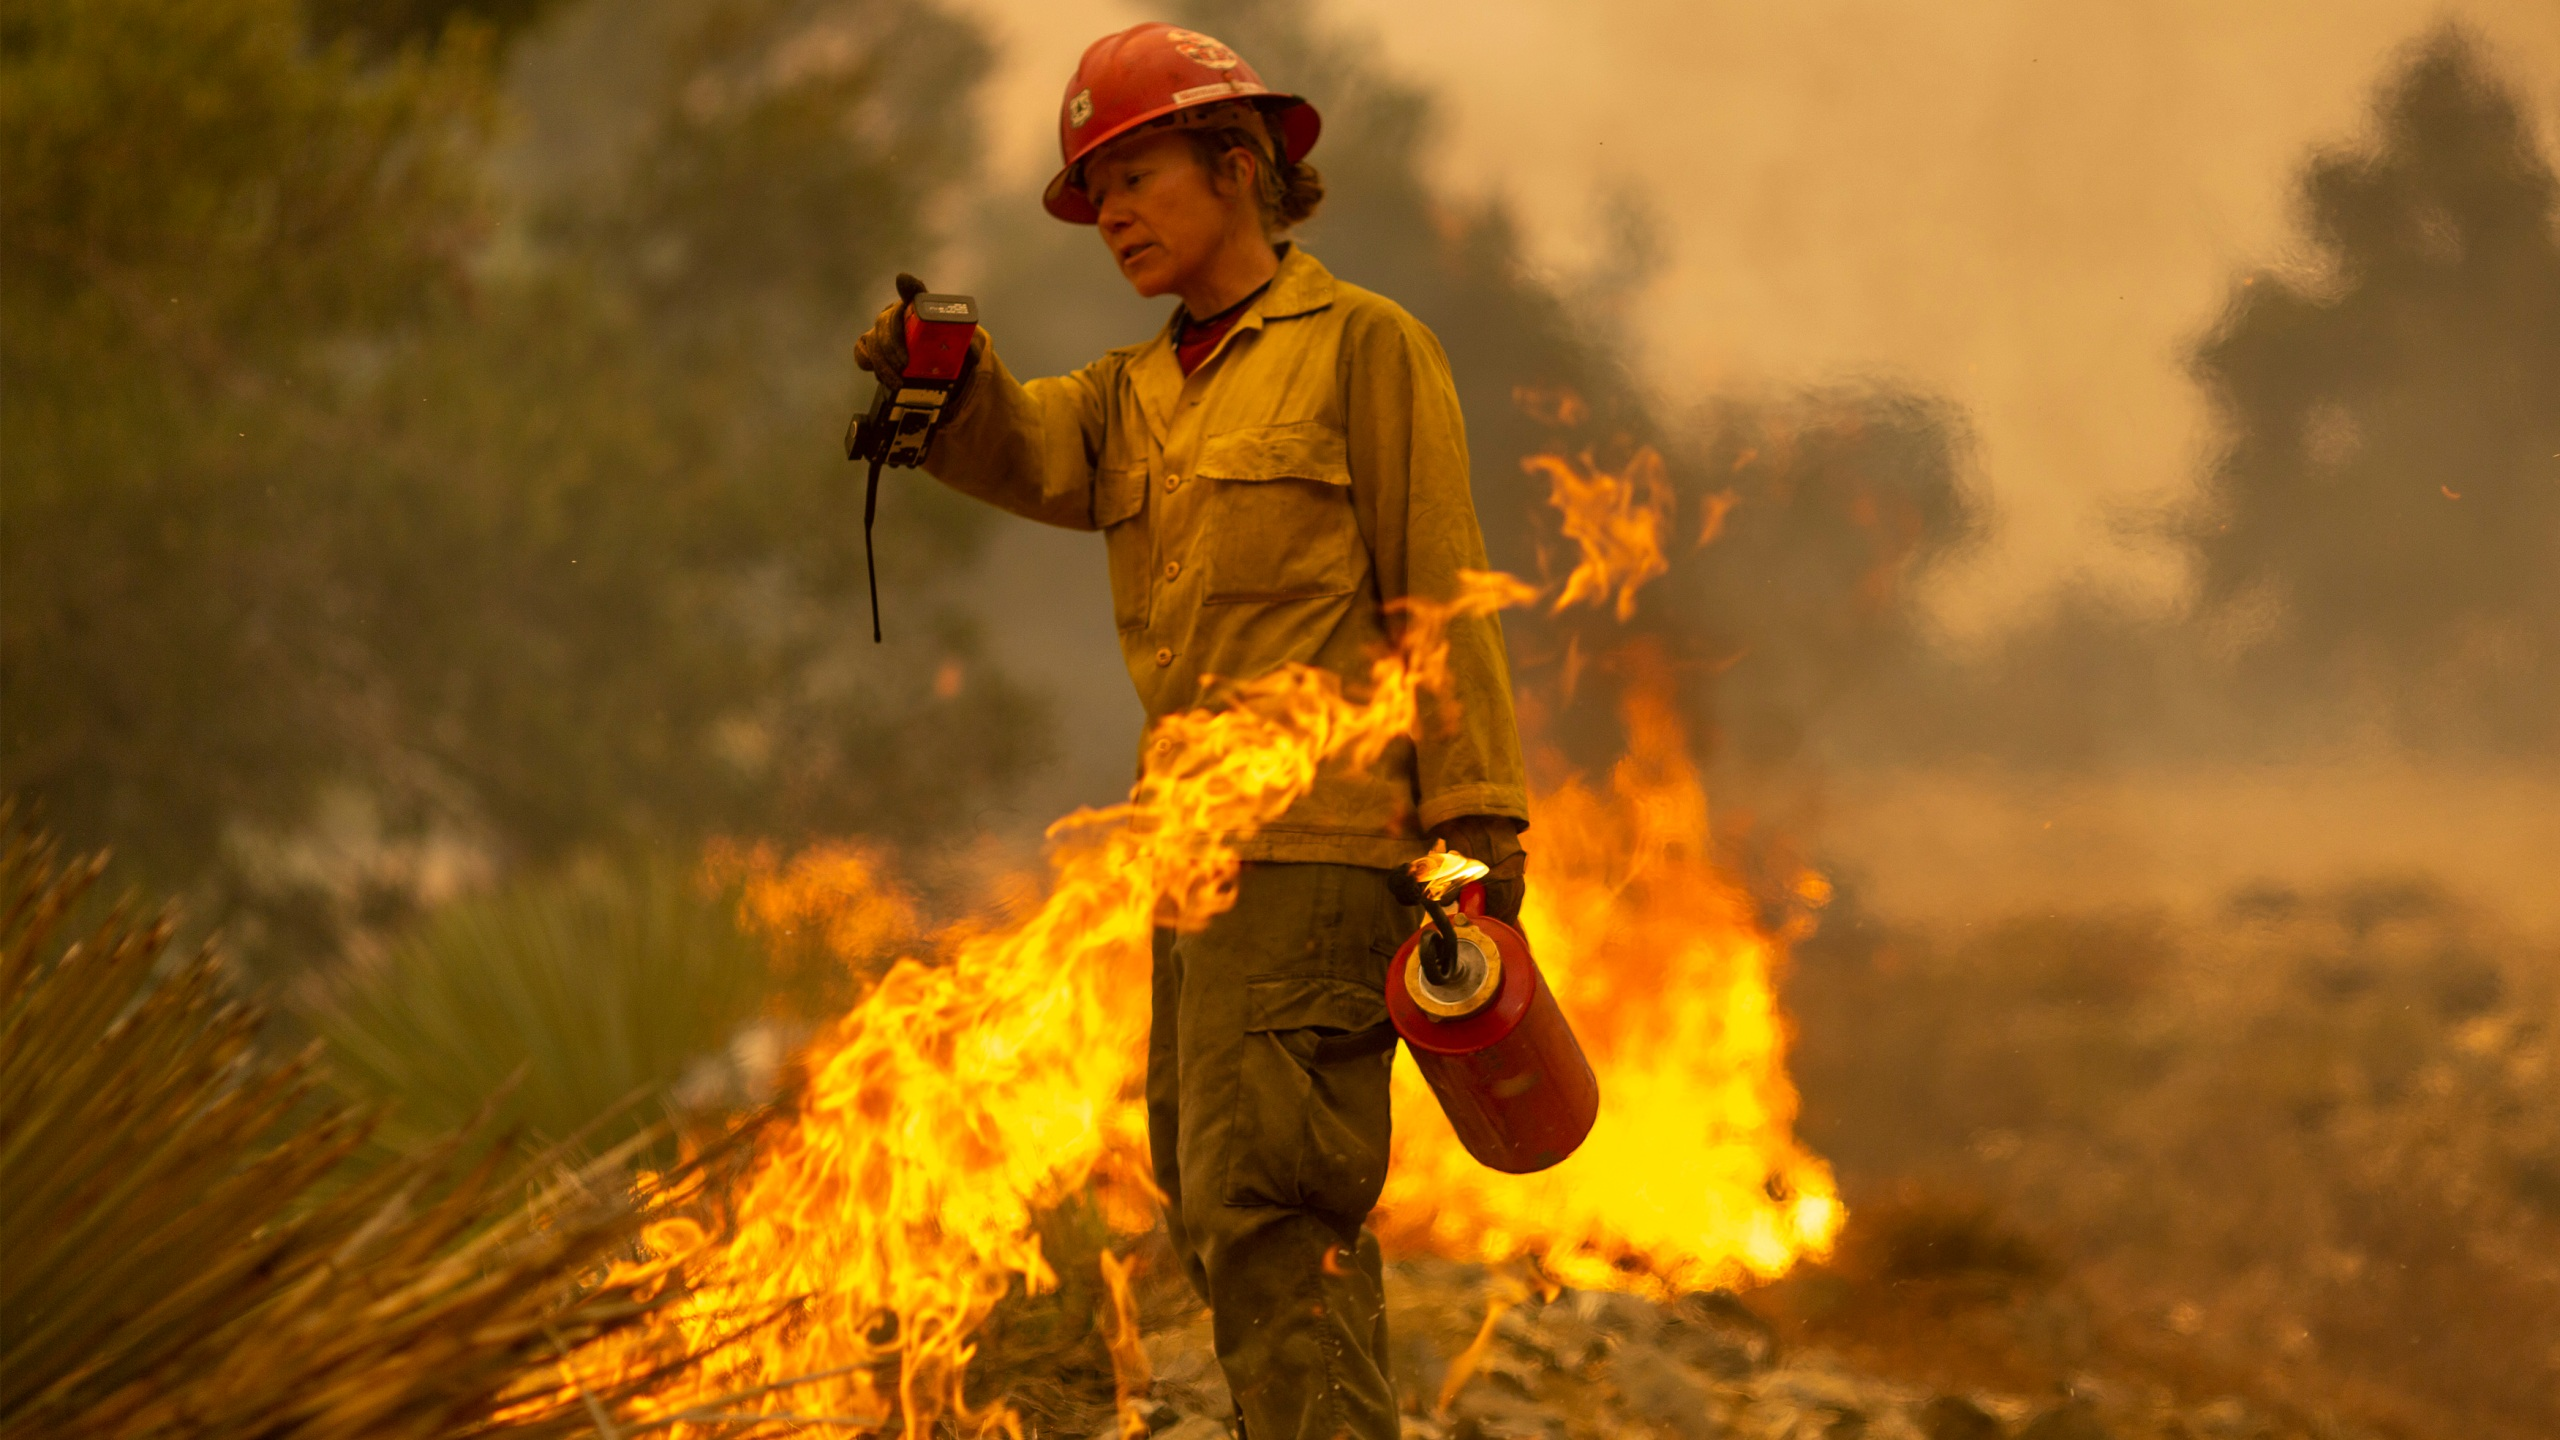 Mormon Lake Hotshots firefighter Sara Sweeney uses a drip torch to set a backfire to protect mountain communities from the Bobcat Fire in the Angeles National Forest on September 10, 2020 north of Monrovia, California. (David McNew/Getty Images)